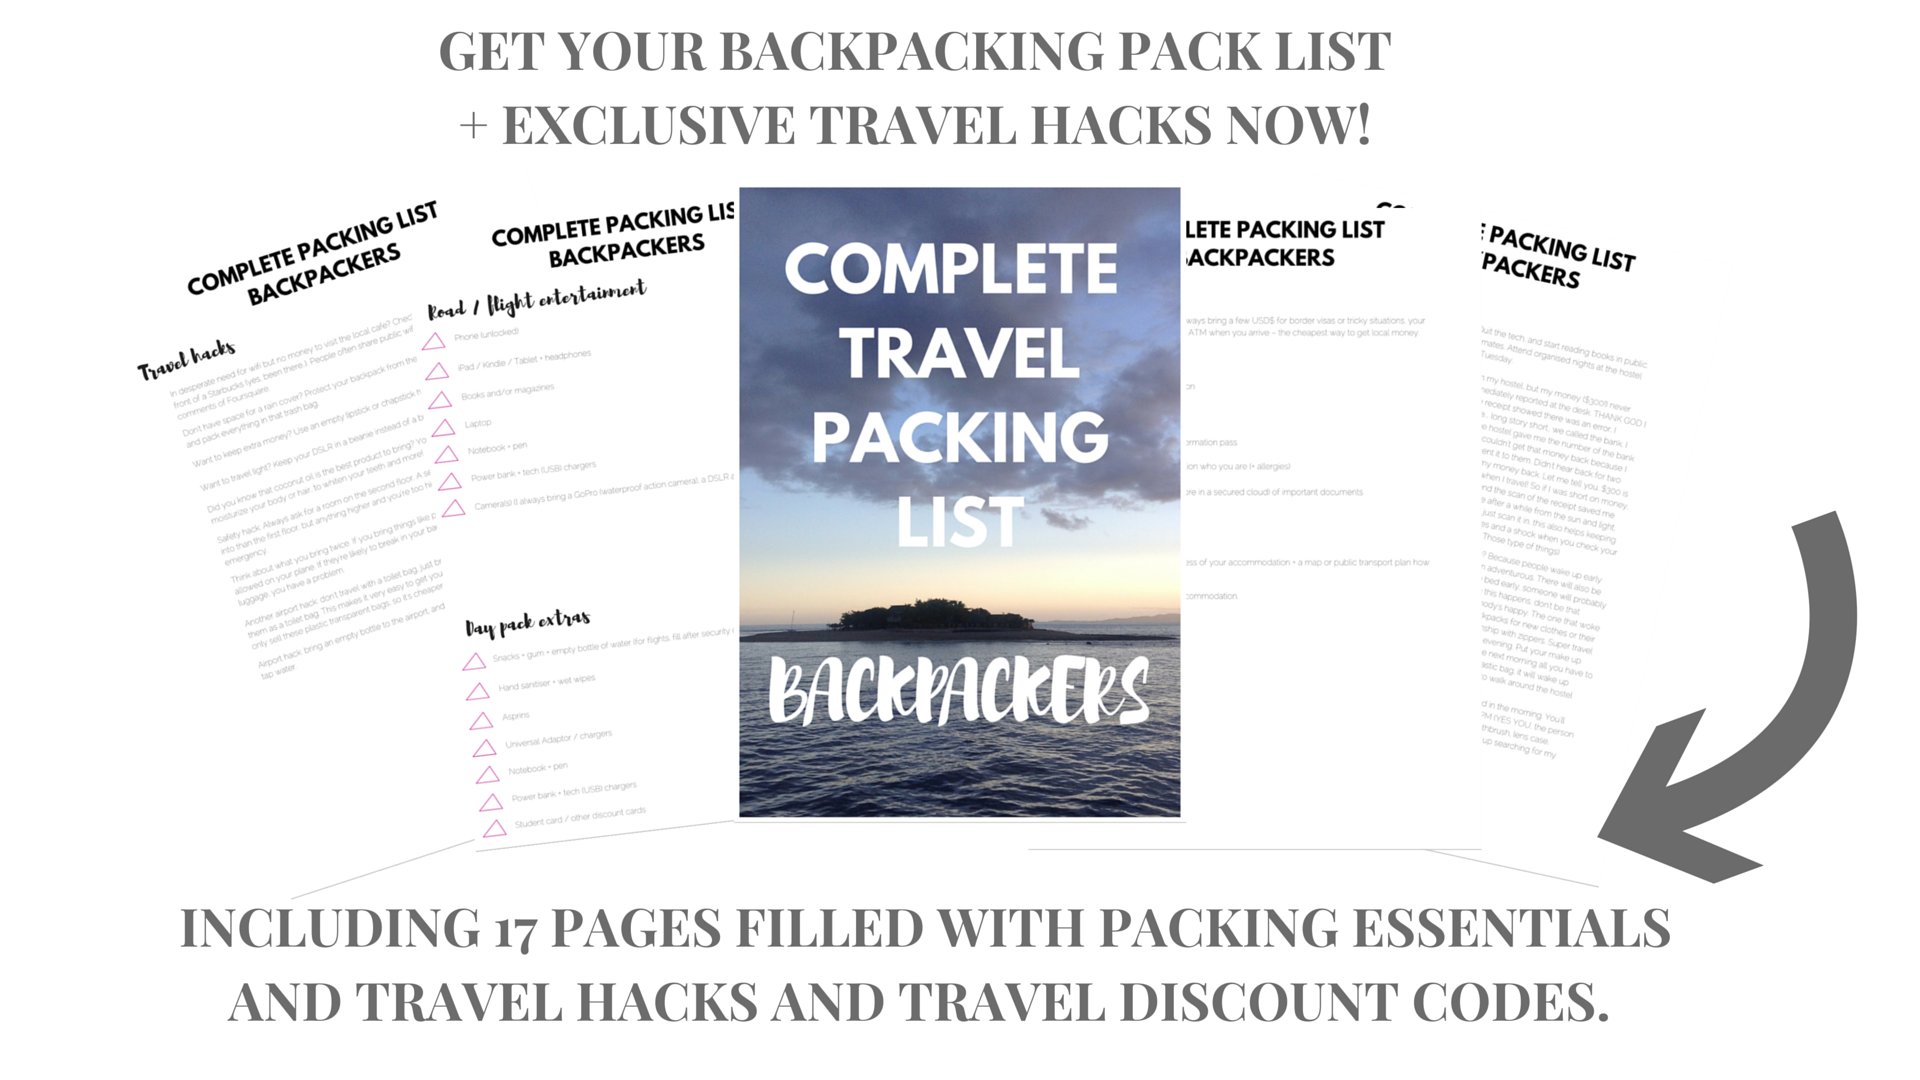 Complete travel packing list and travel hack guide for backpackers